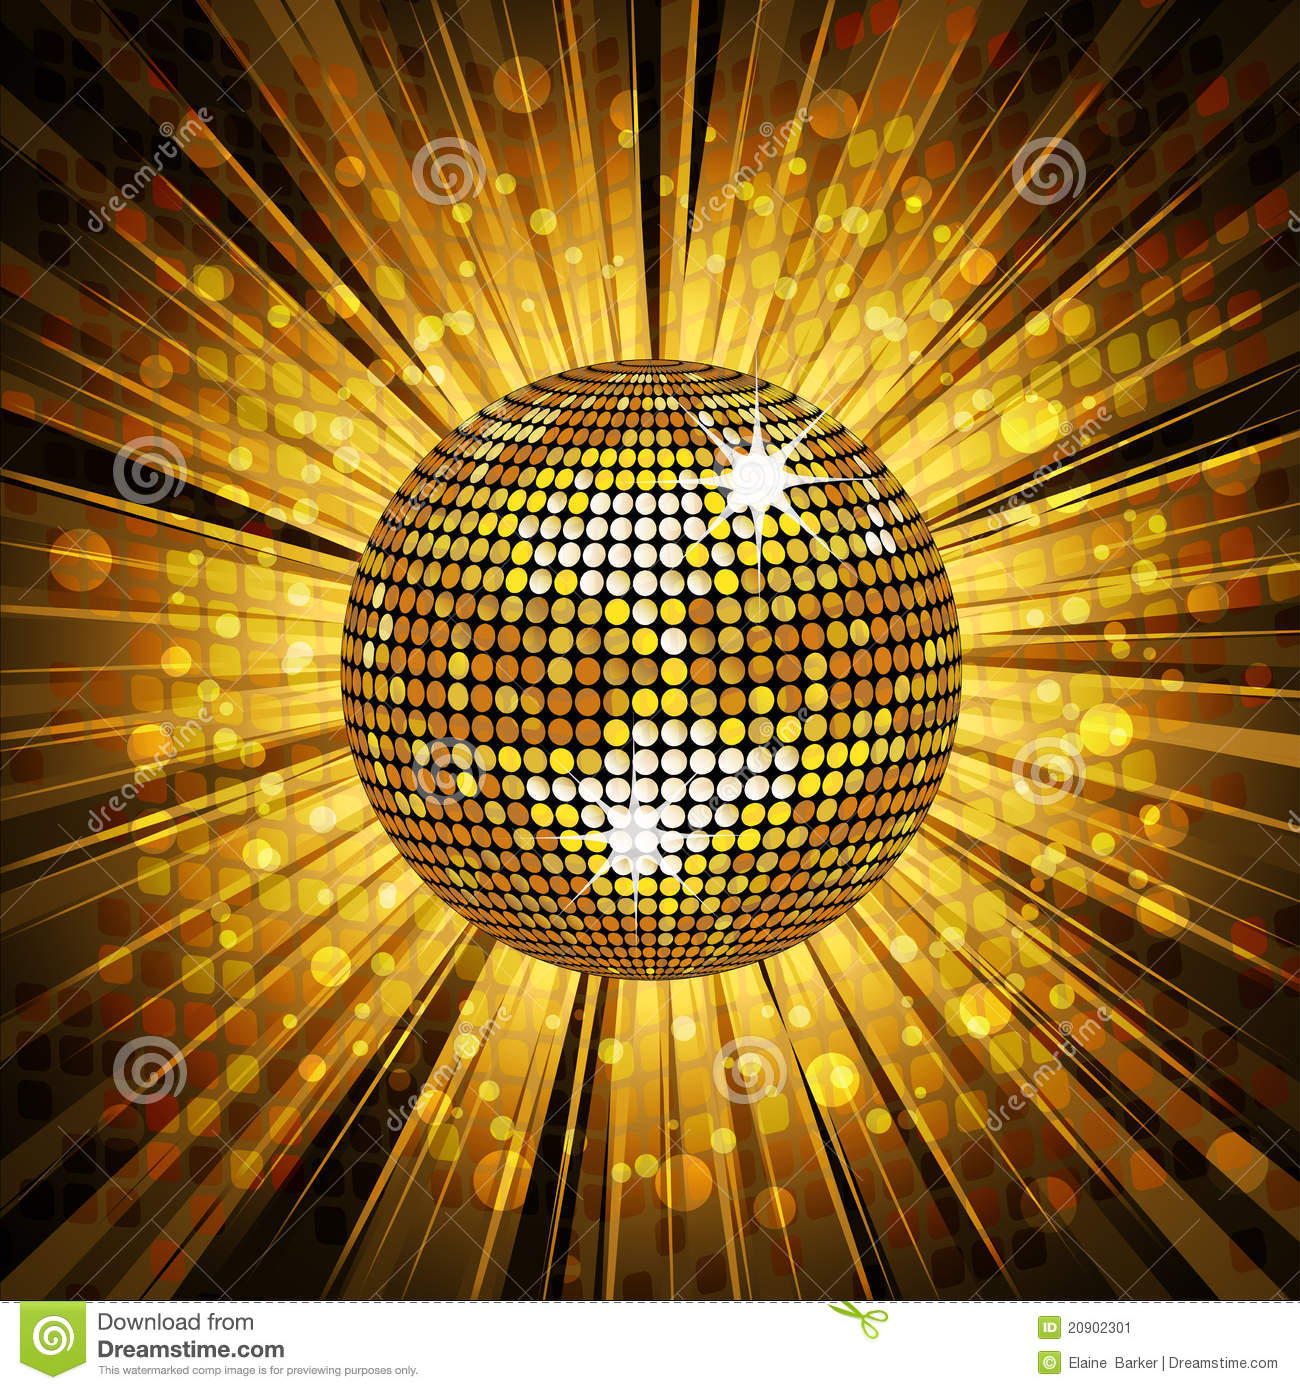 More similar stock images of ` Gold disco ball and mosaic background `